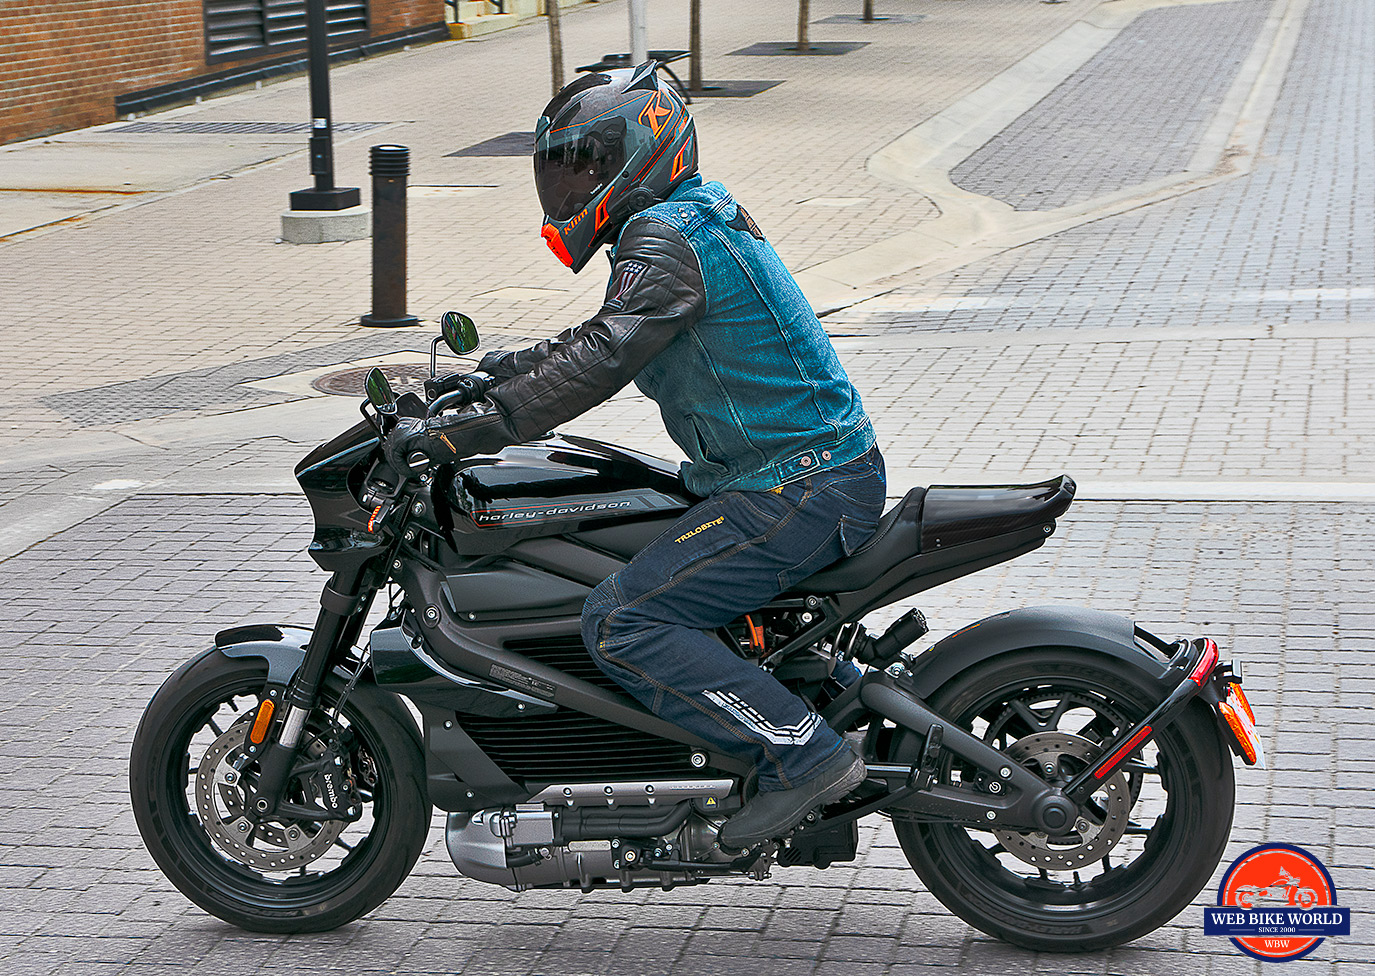 The Harley Davidson LiveWire Is A High-Speed, Low-Drag Ninja